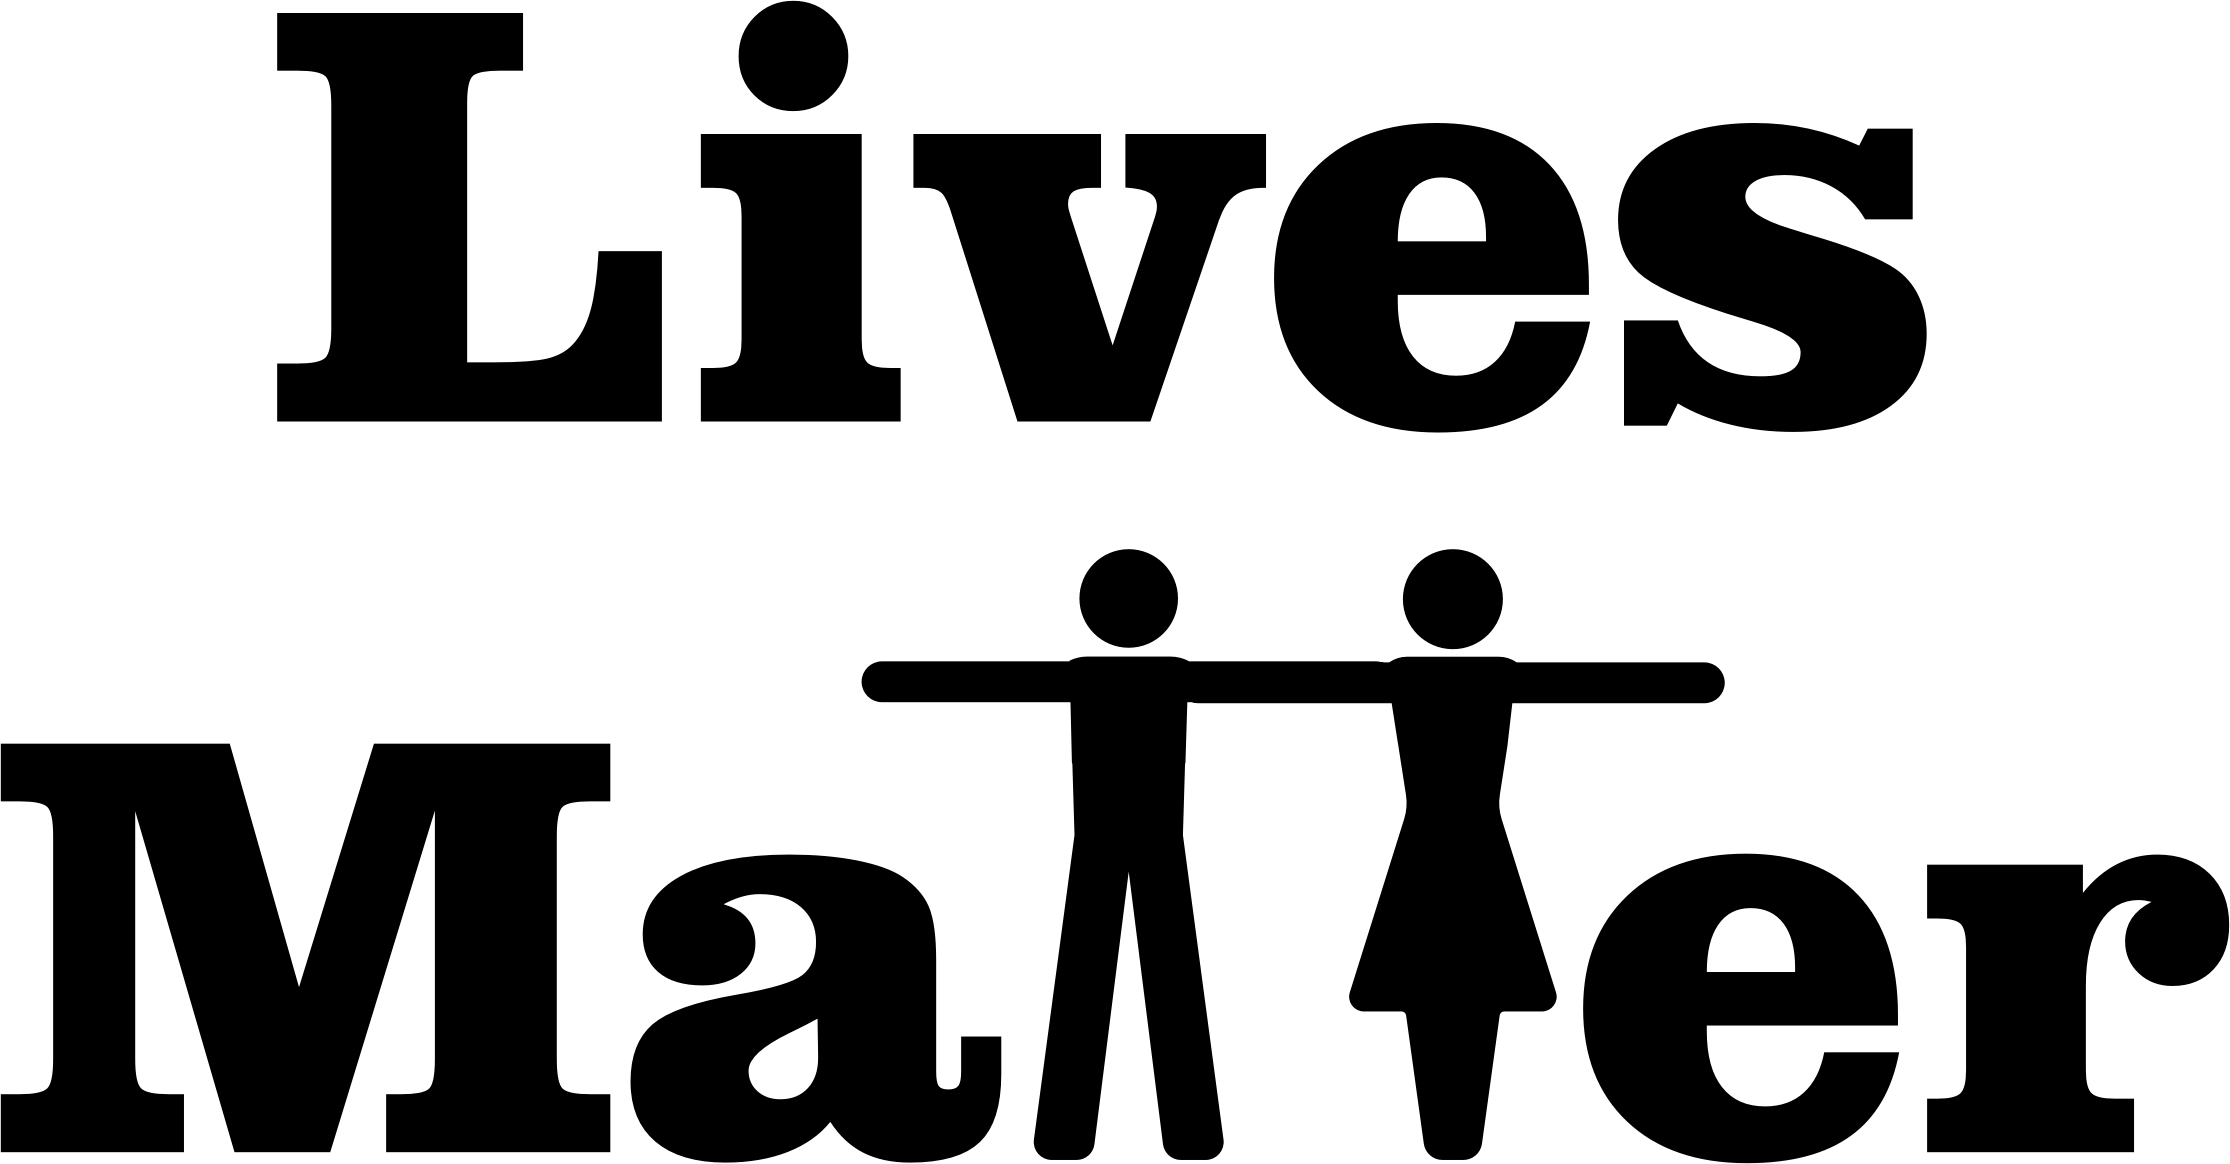 All lives matter clipart graphic free stock Black lives matter clipart » Clipart Portal graphic free stock